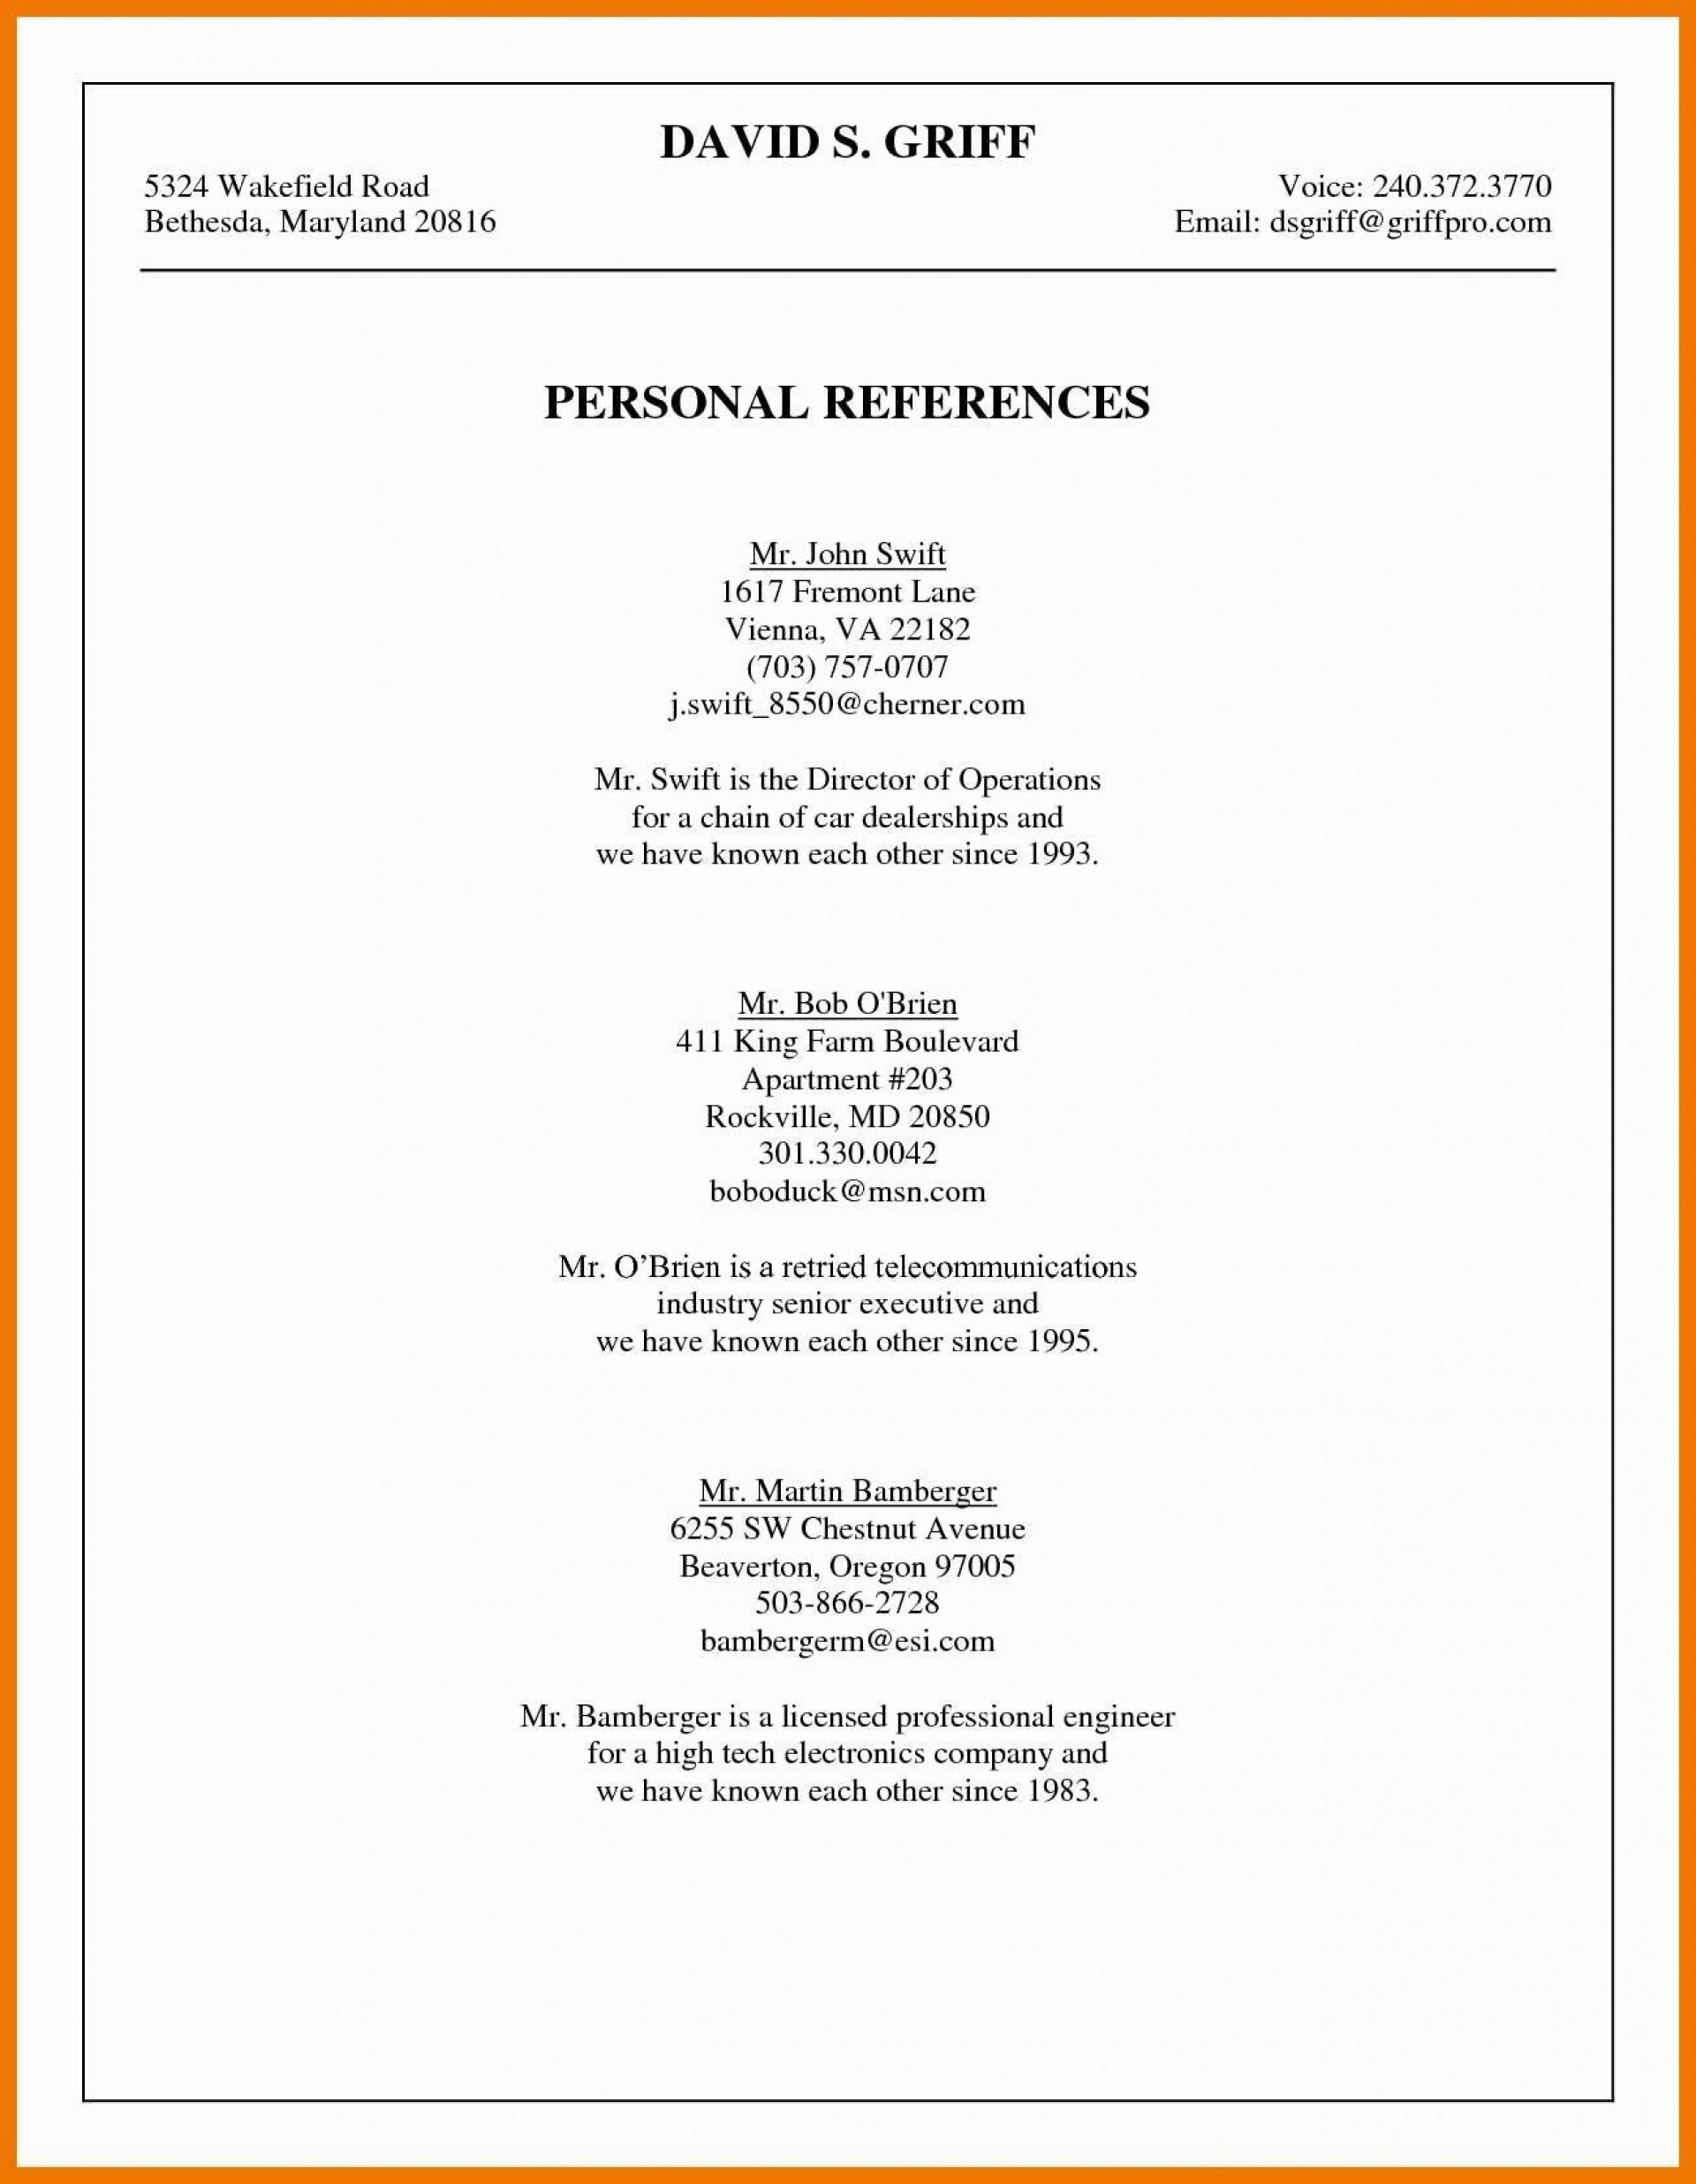 003 Phenomenal List Personal Reference Sample High Def 1920